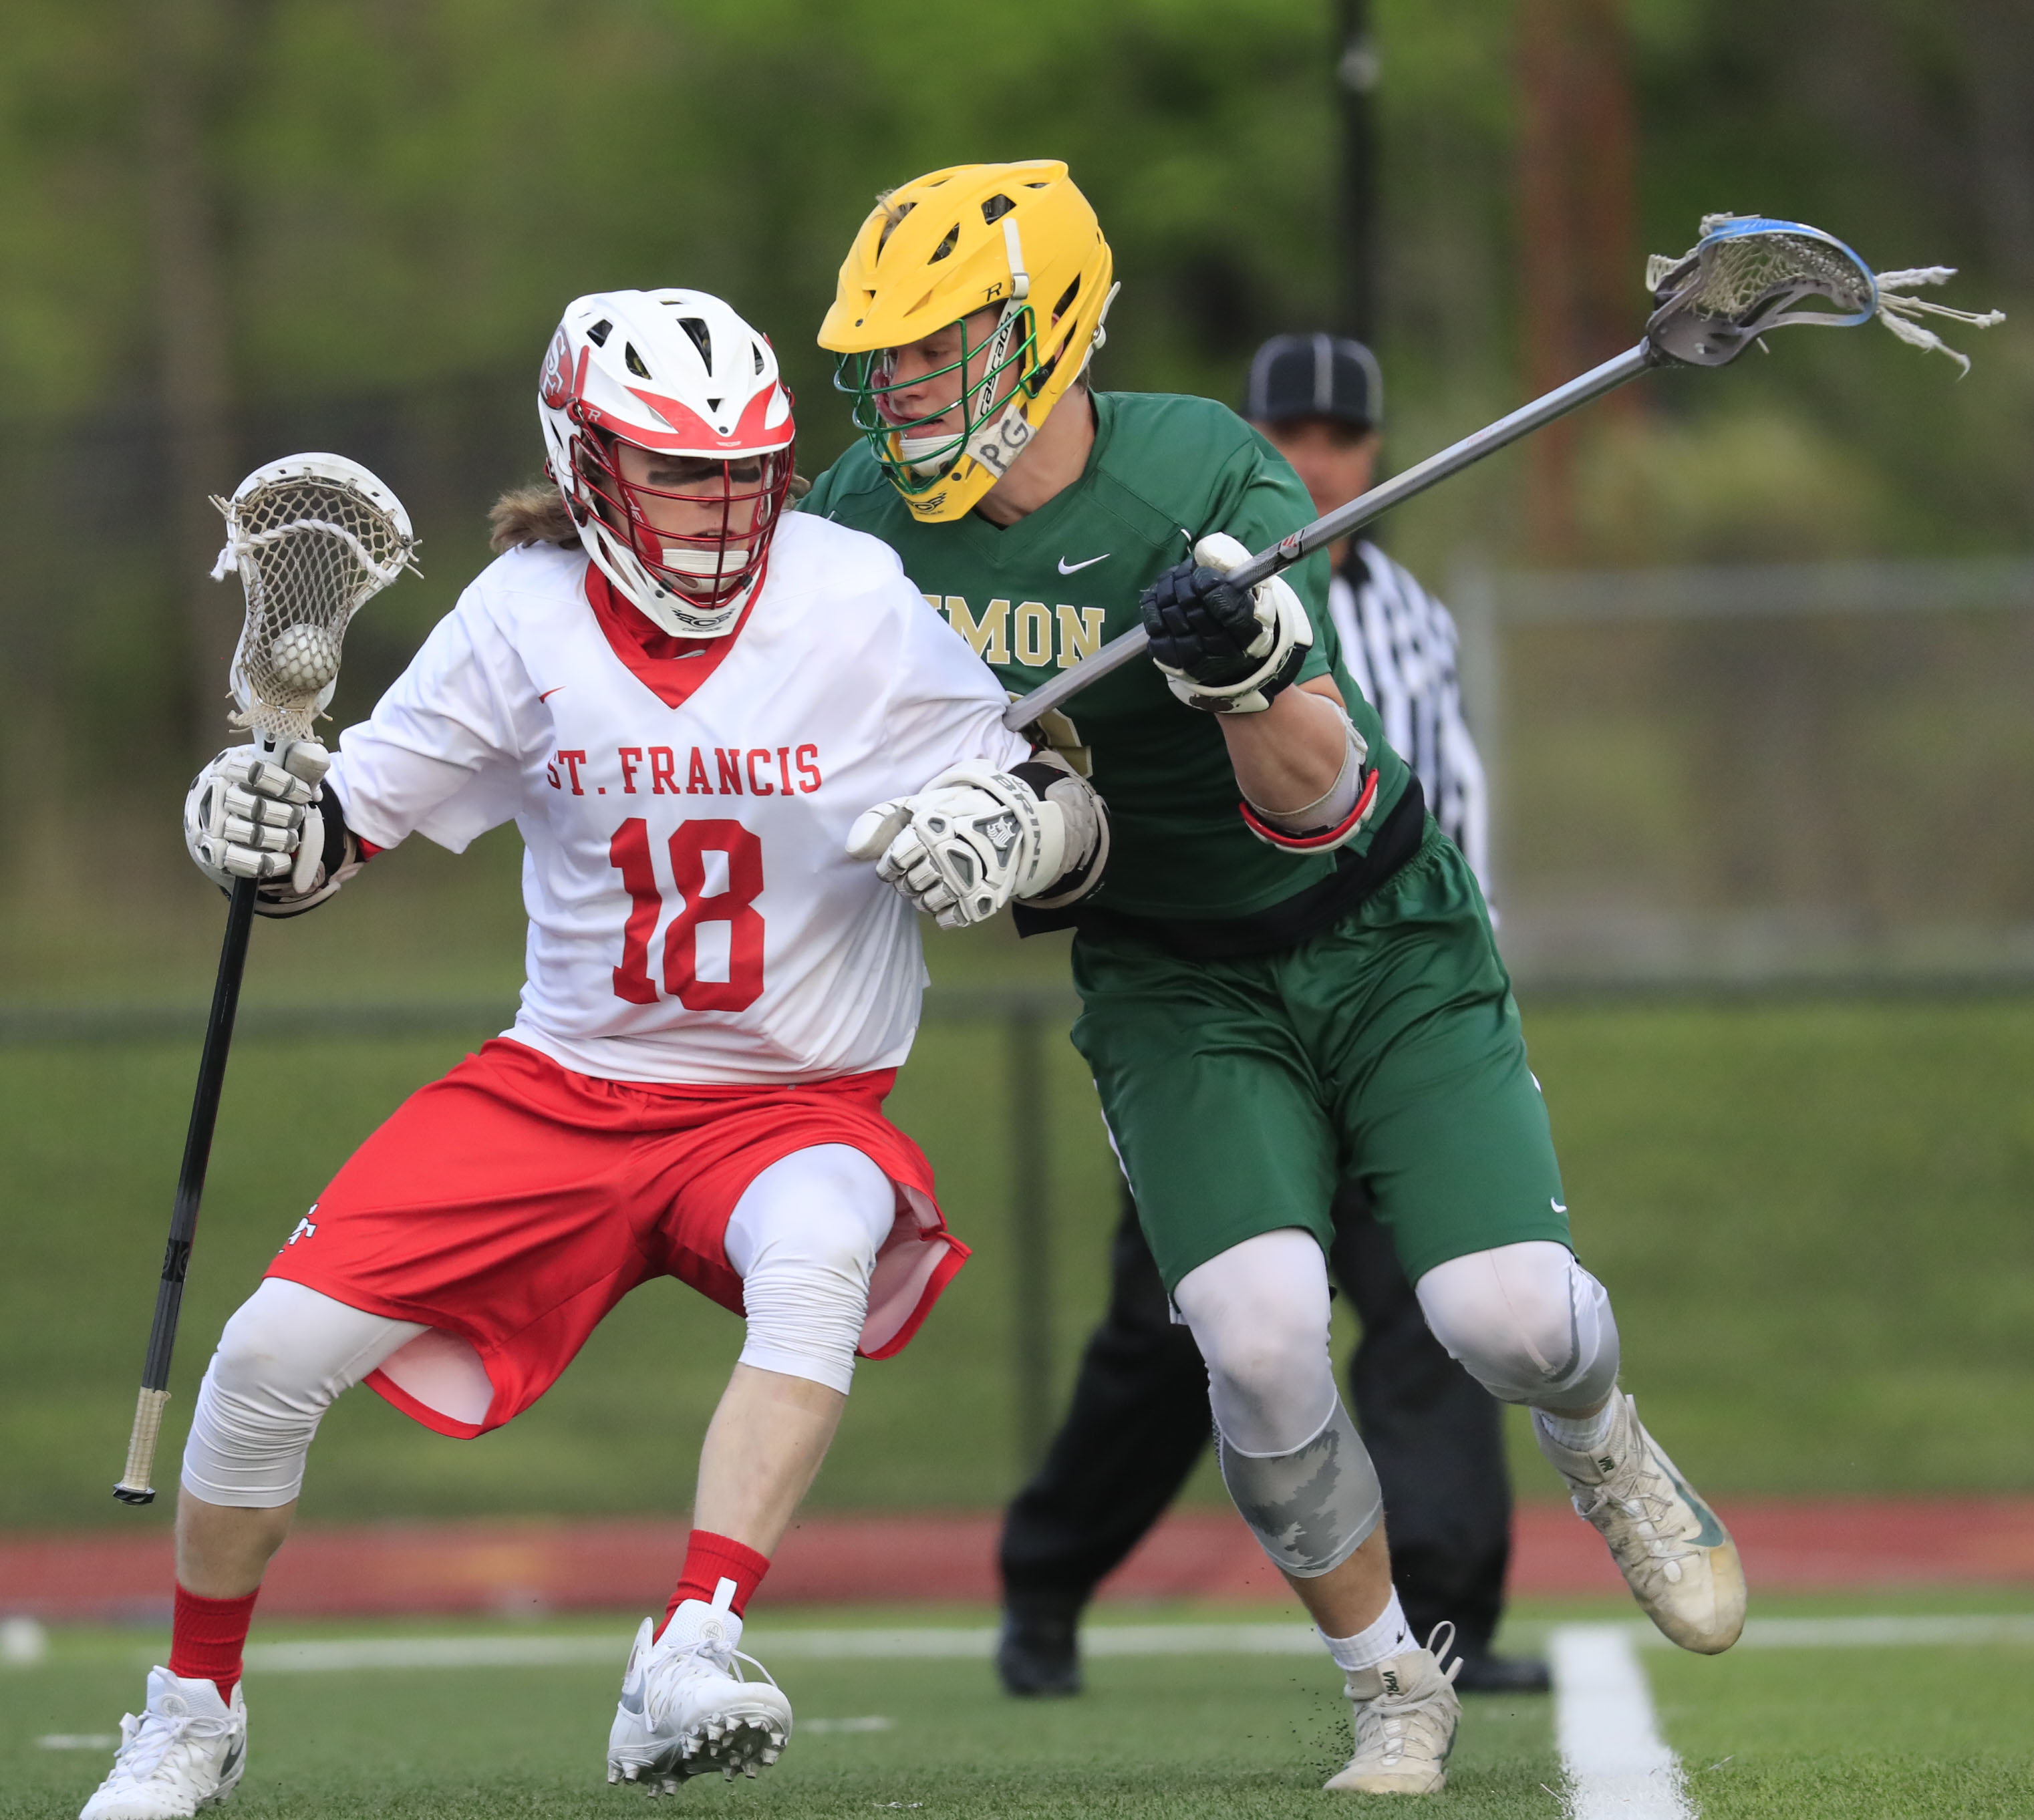 St. Francis' Tristan Engelhardt moves the ball against Timon-St. Jude during the Red Raiders' 8-6 victory Thursday at Polian Family Field. (Harry Scull Jr./Buffalo News)